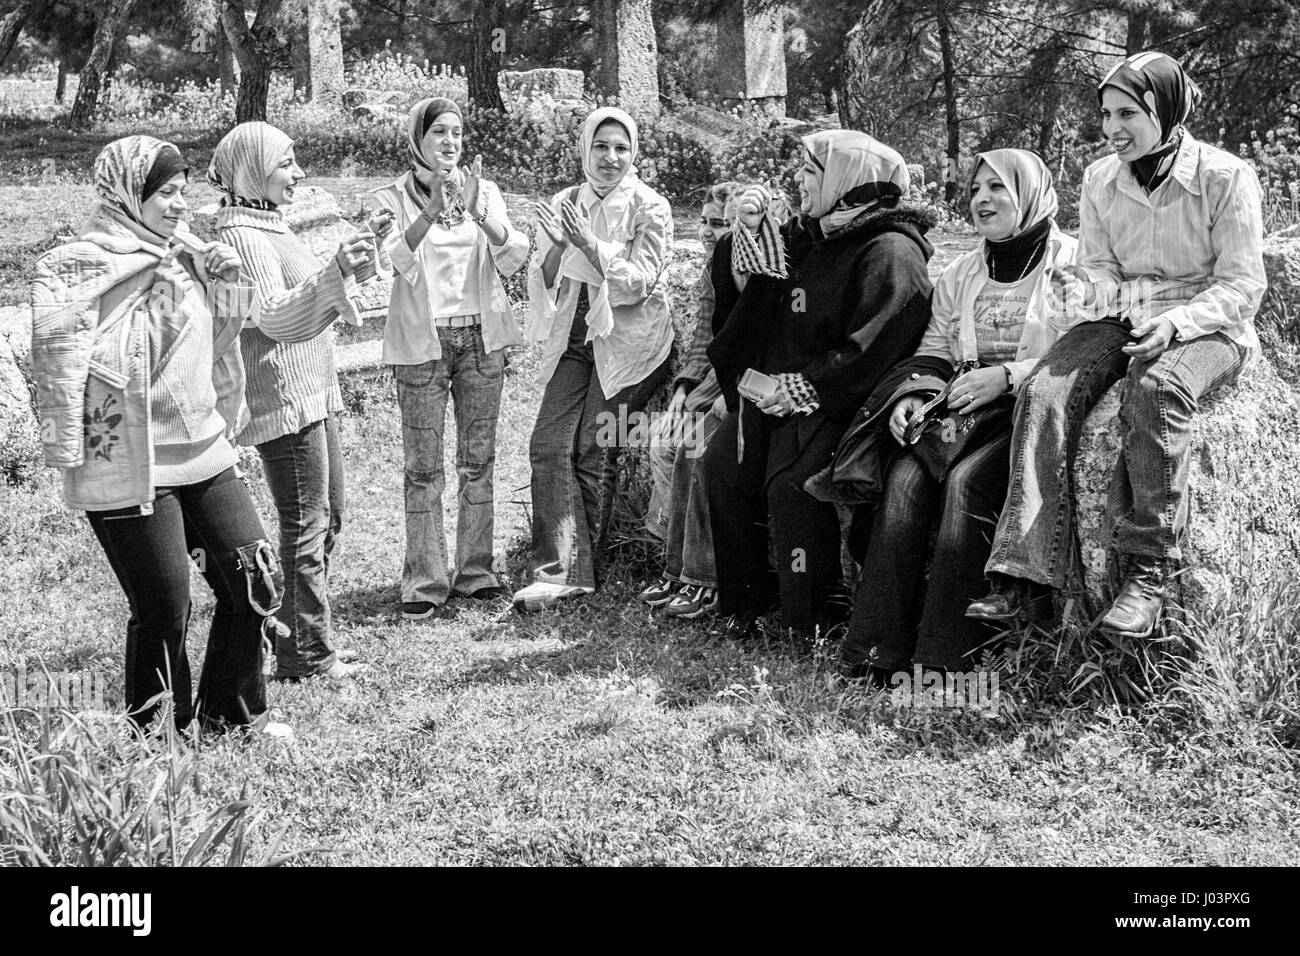 Syrian women singing and clapping as they picnic at the Basilica of St. Simeon in Syria. - Stock Image